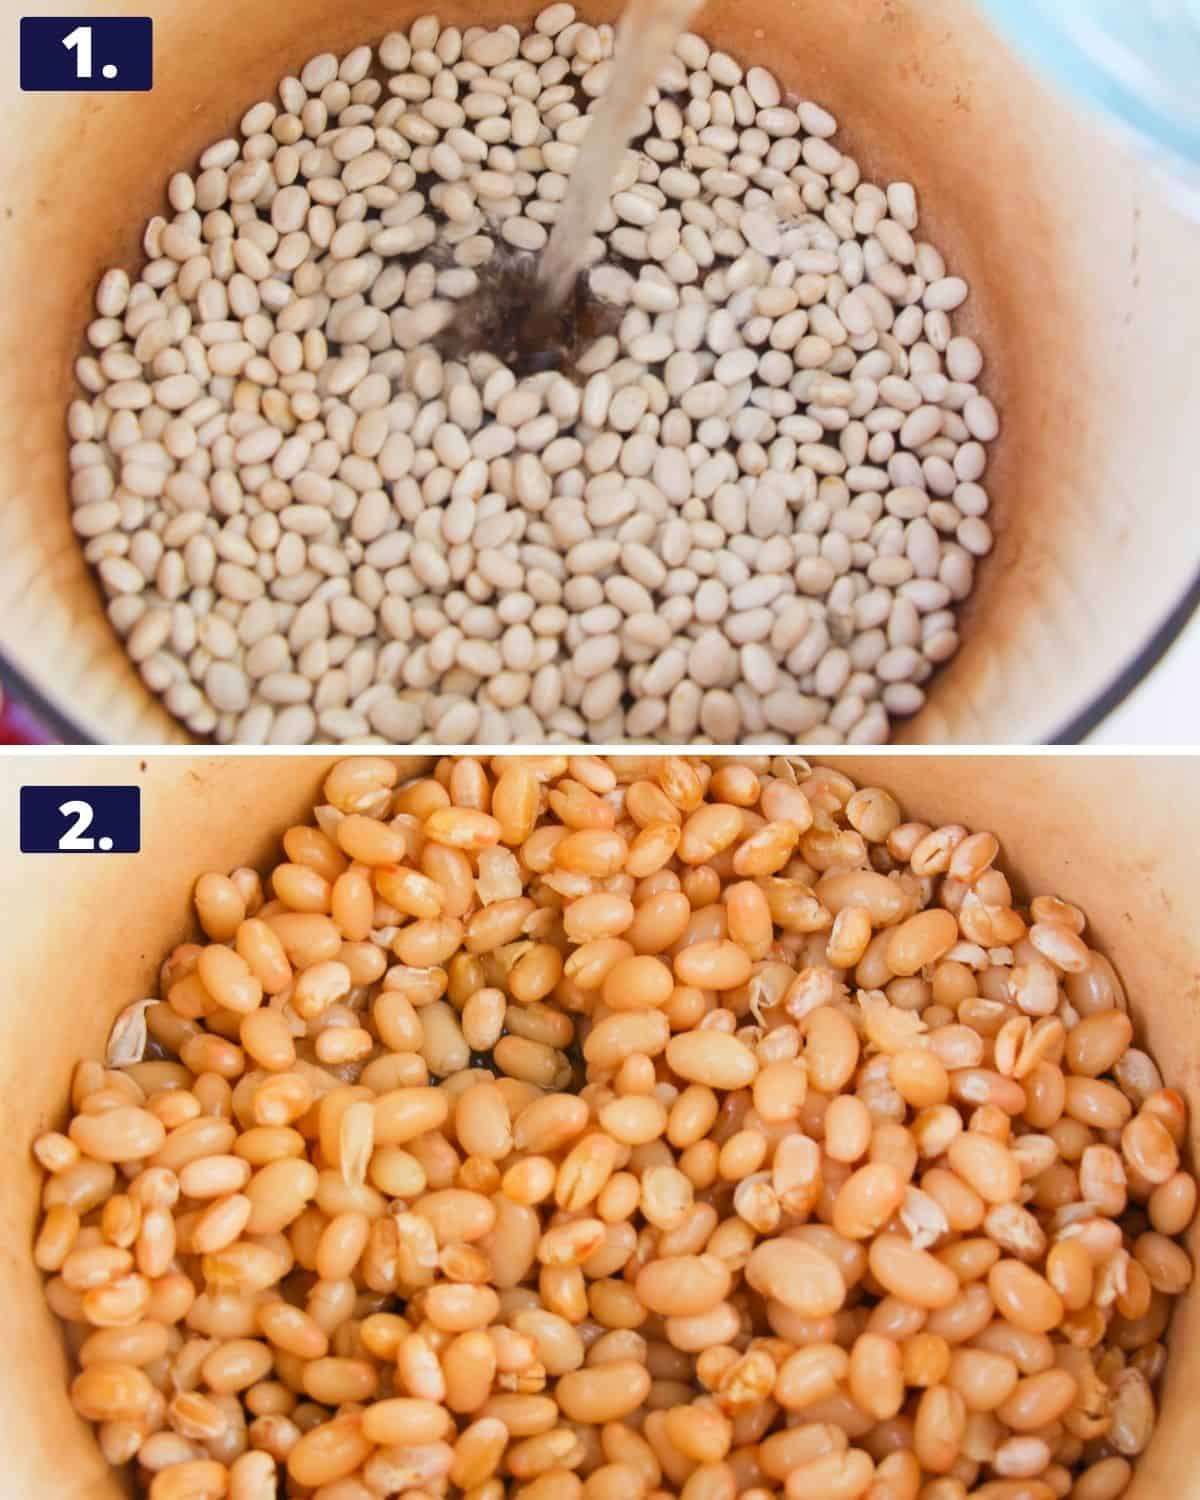 White beans in a stock pot. 2nd photo, the beans in the pot after being cooked.